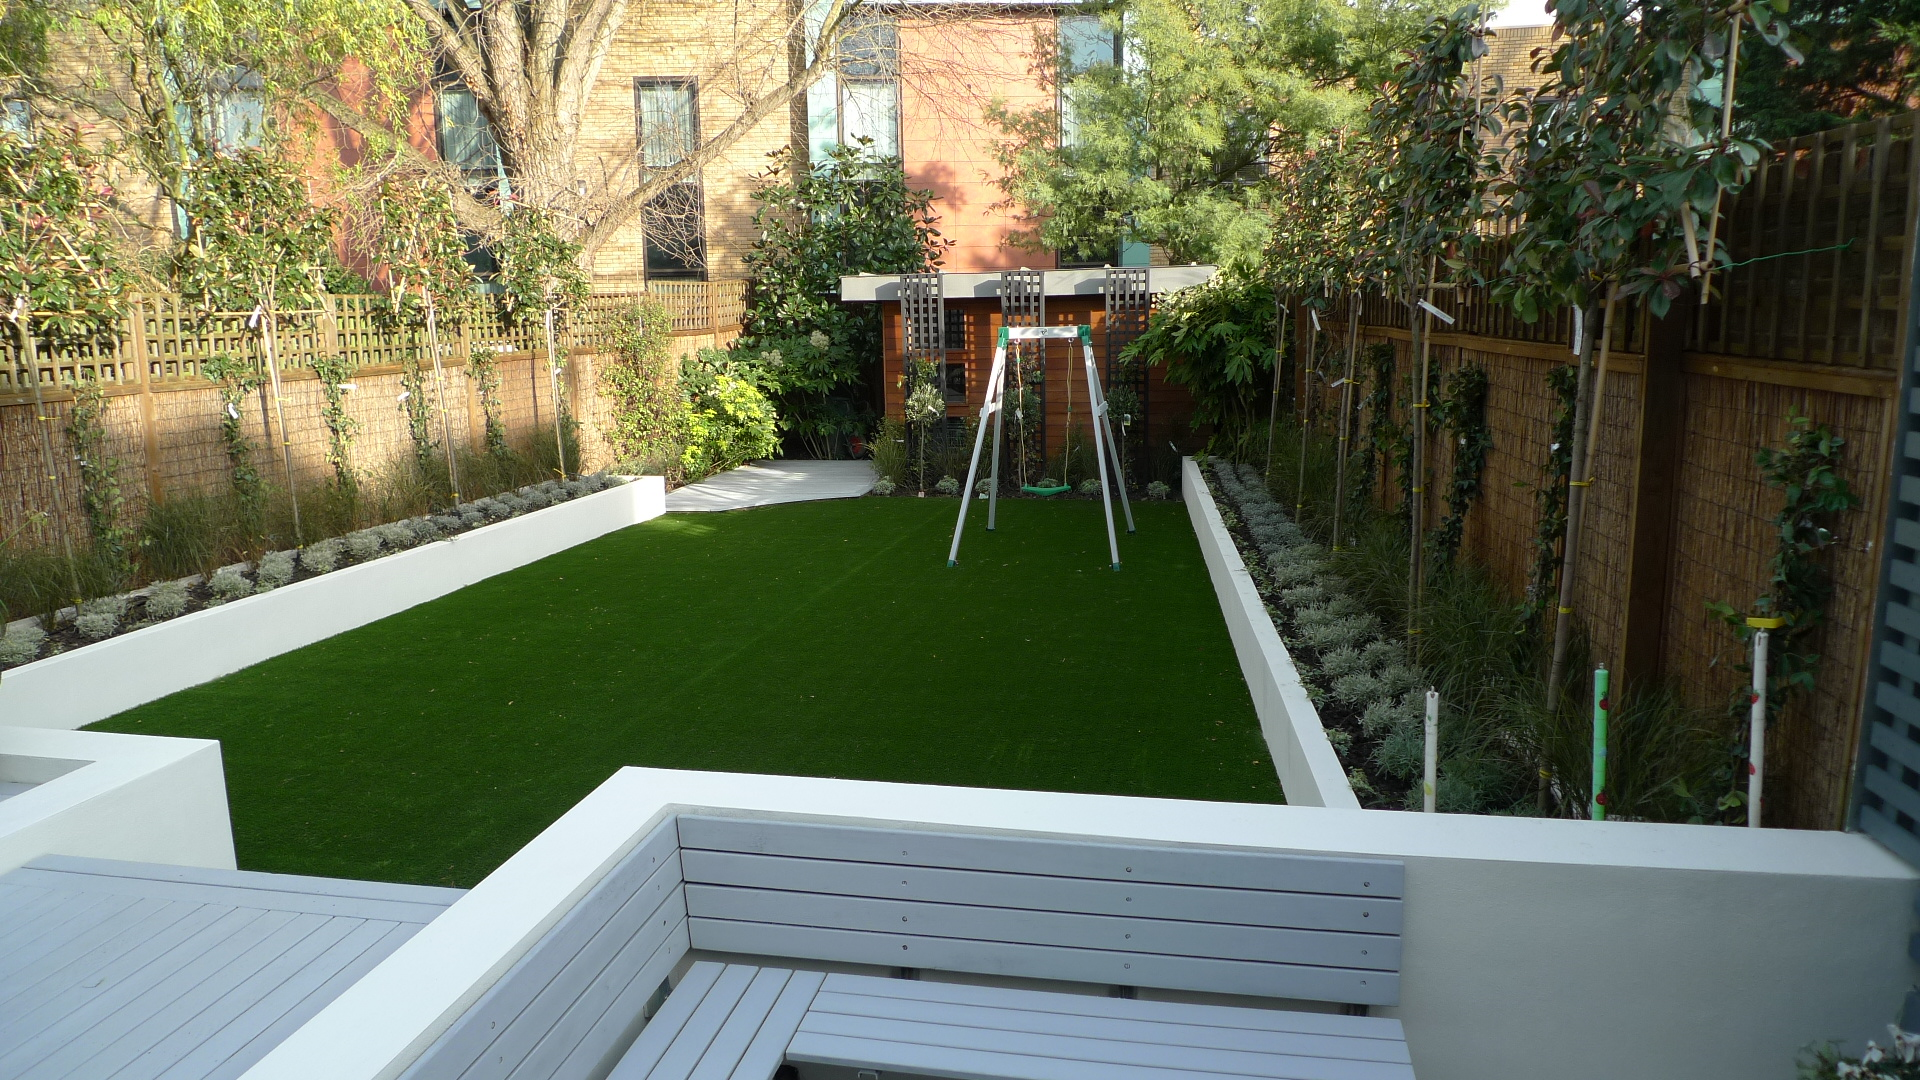 Modern garden design ideas london london garden design for Backyard landscape design ideas